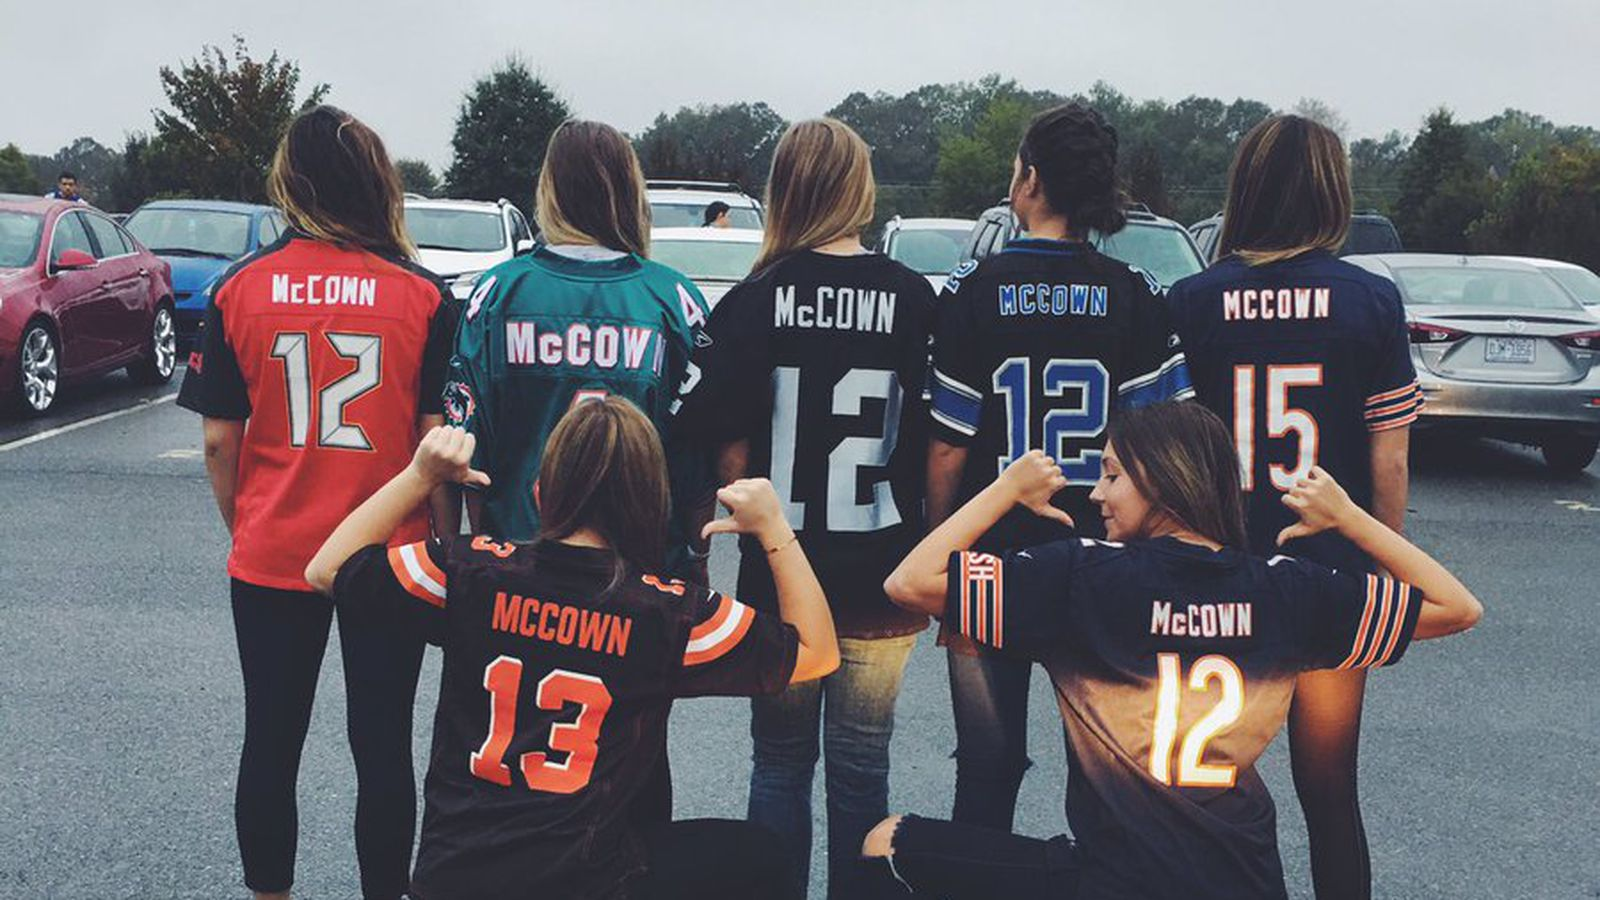 josh mccown daughter jerseys